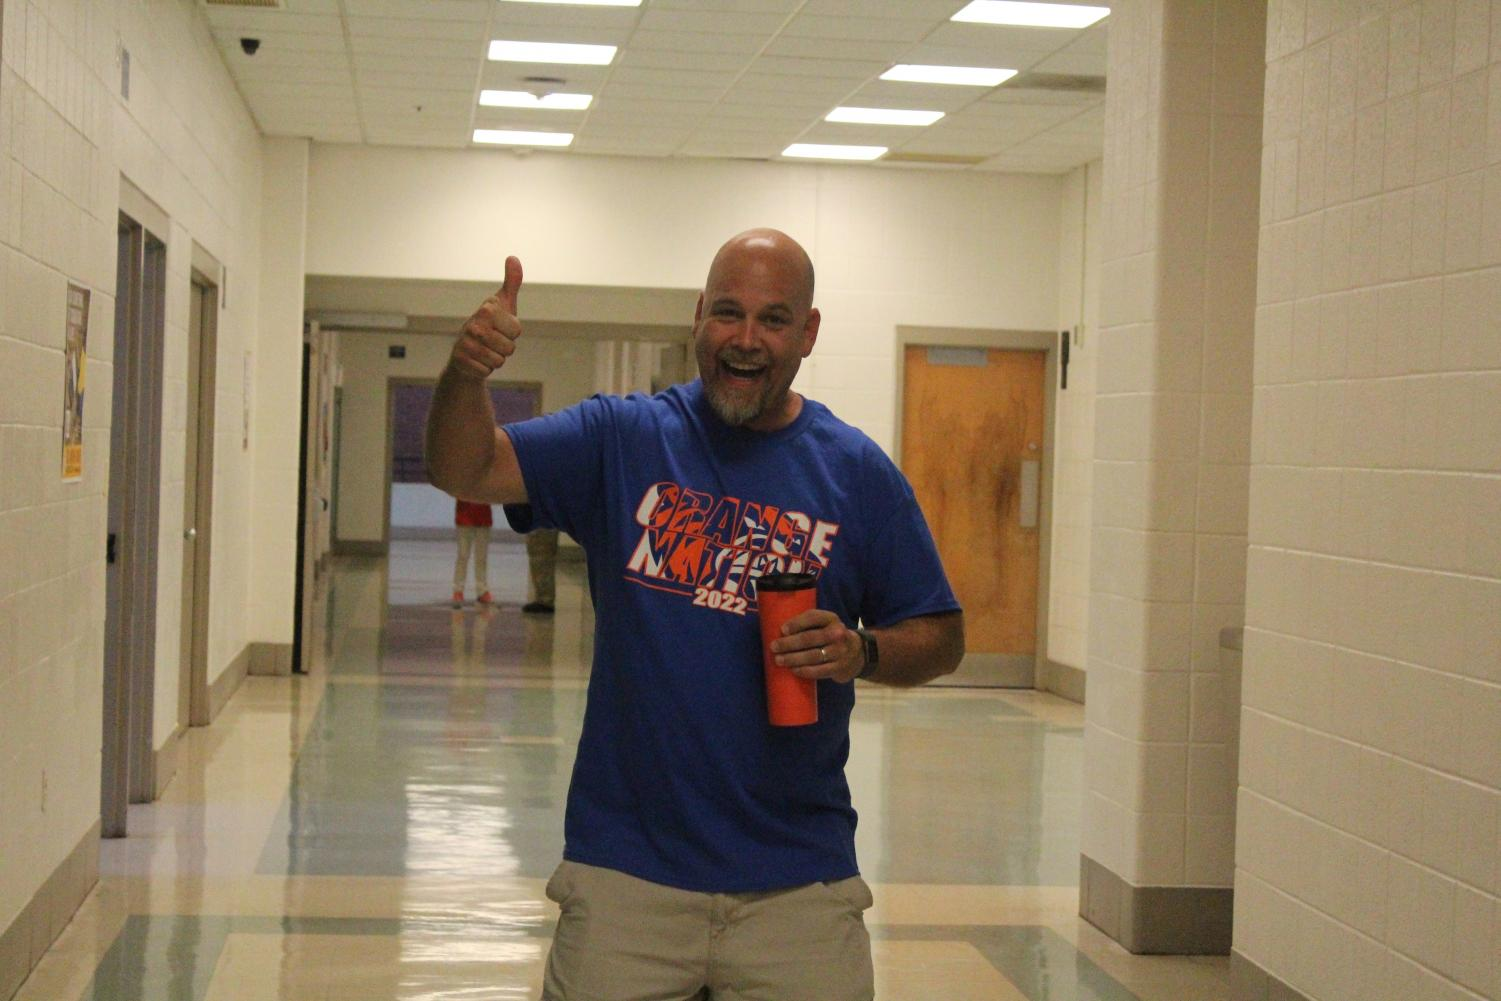 Social+Studies+teacher+William+Funk+is+excited+to+greet+all+the+new+students+at+orientation.